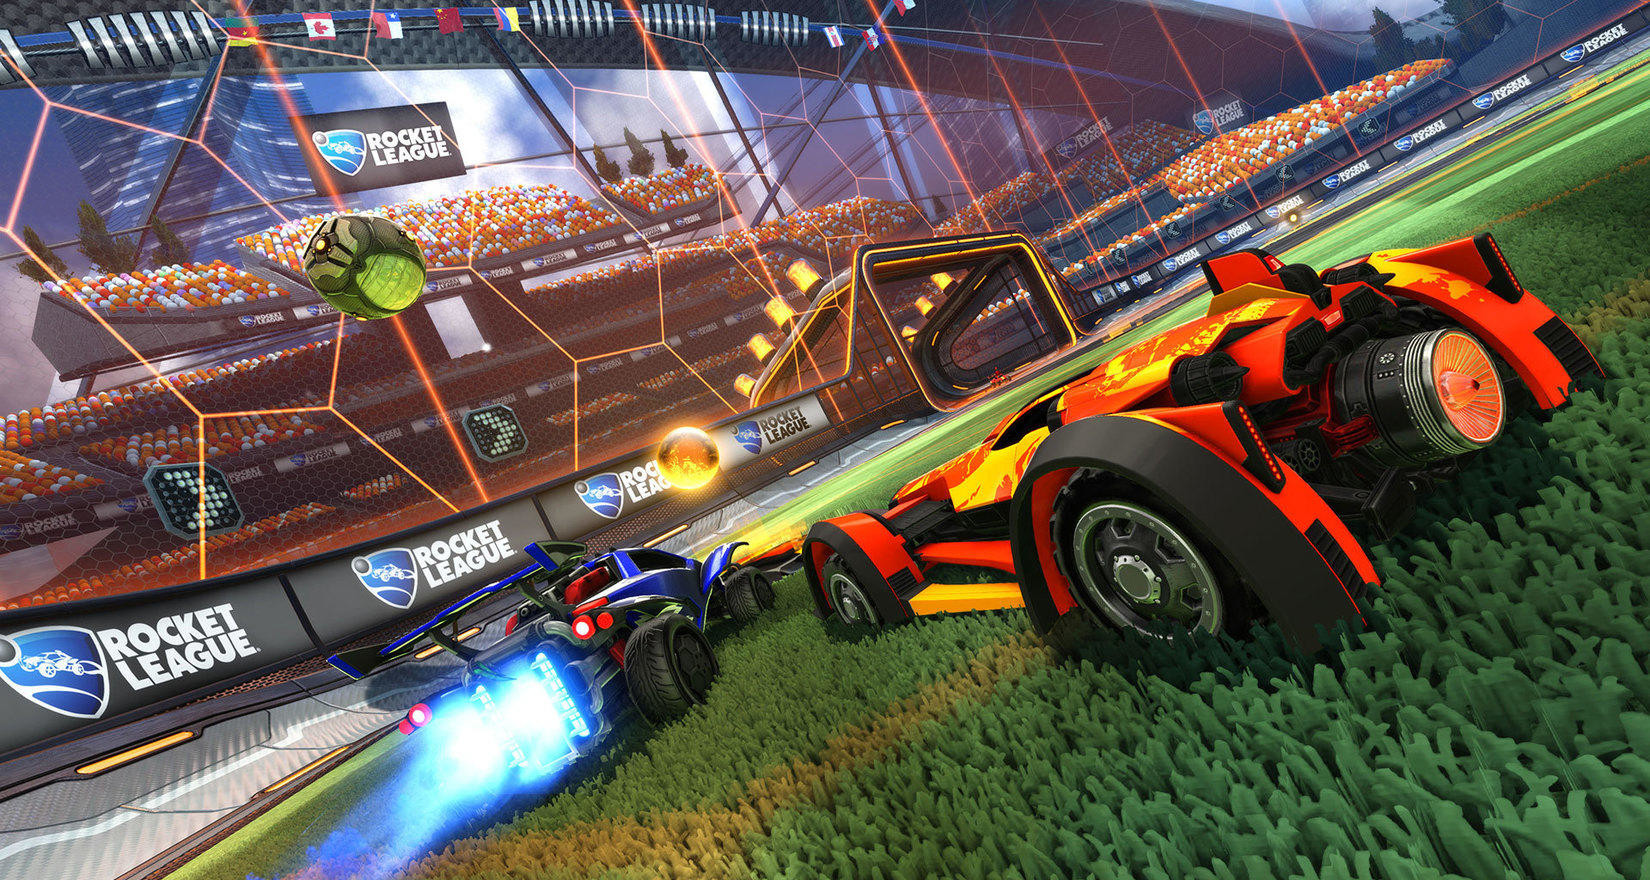 Play 'Rocket League' IRL with a Hot Wheels RC auto kit